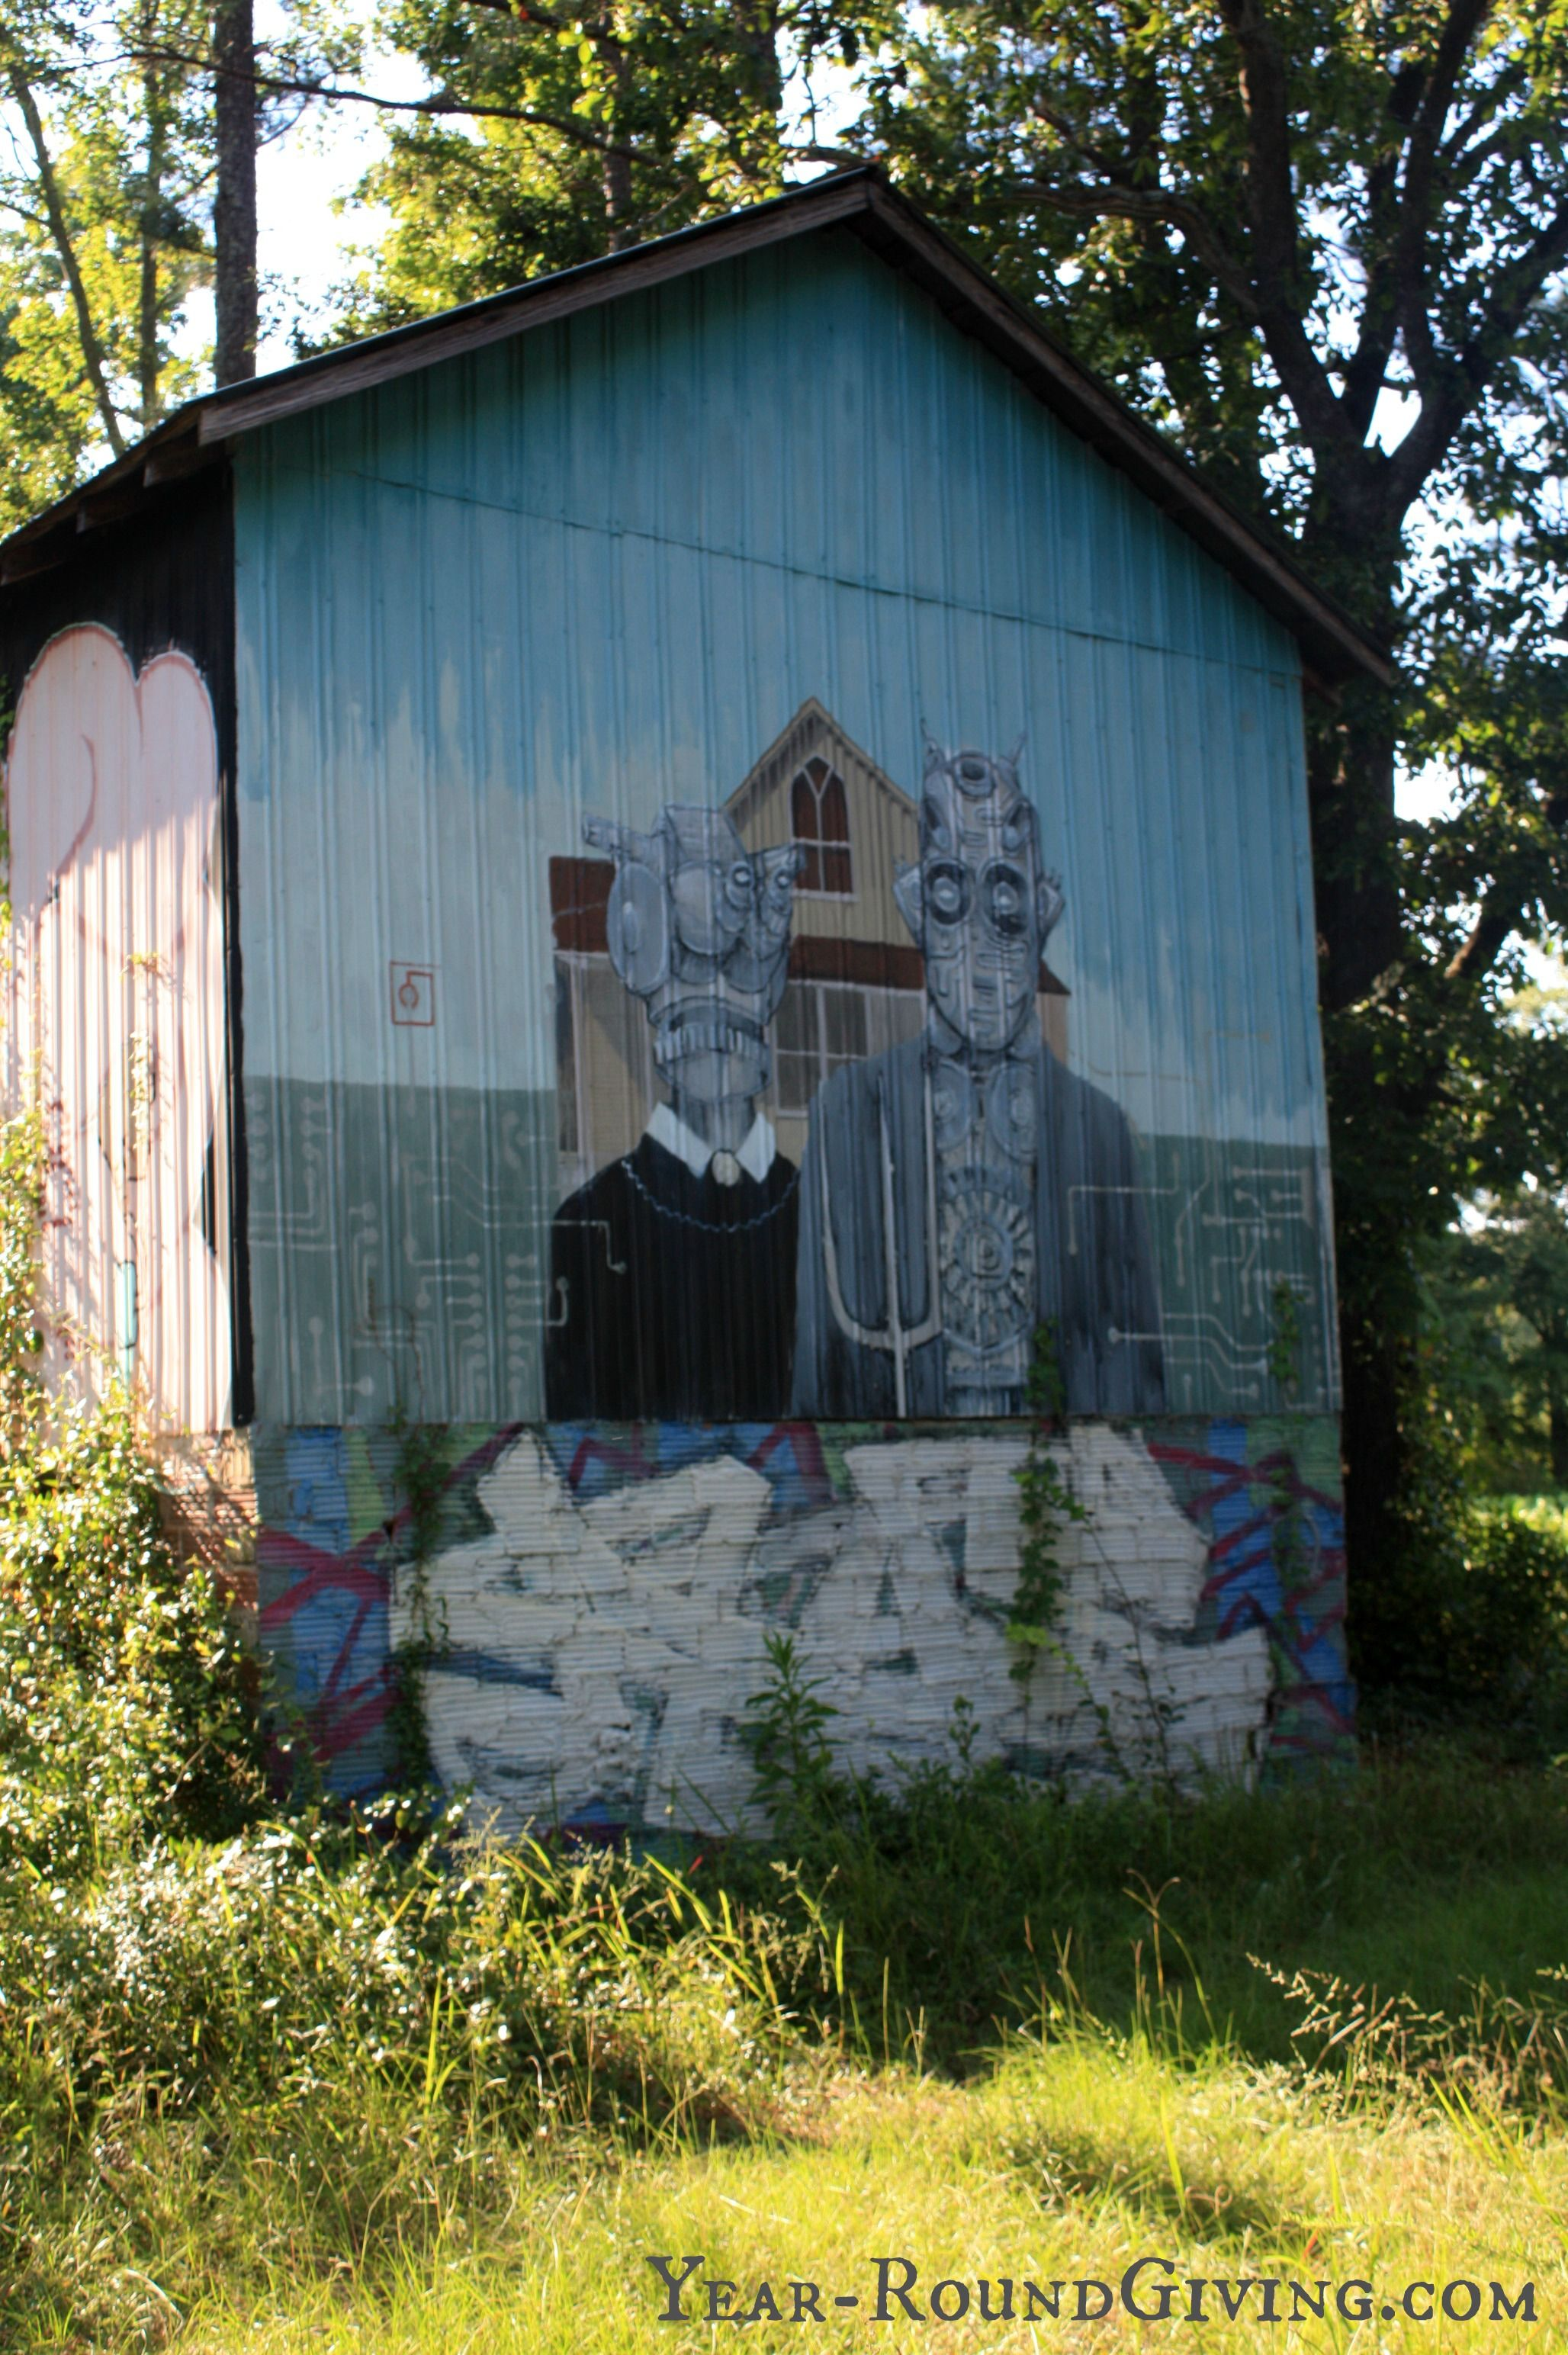 Old Painted Tobacco Barn In Nc Year Roundgiving Com